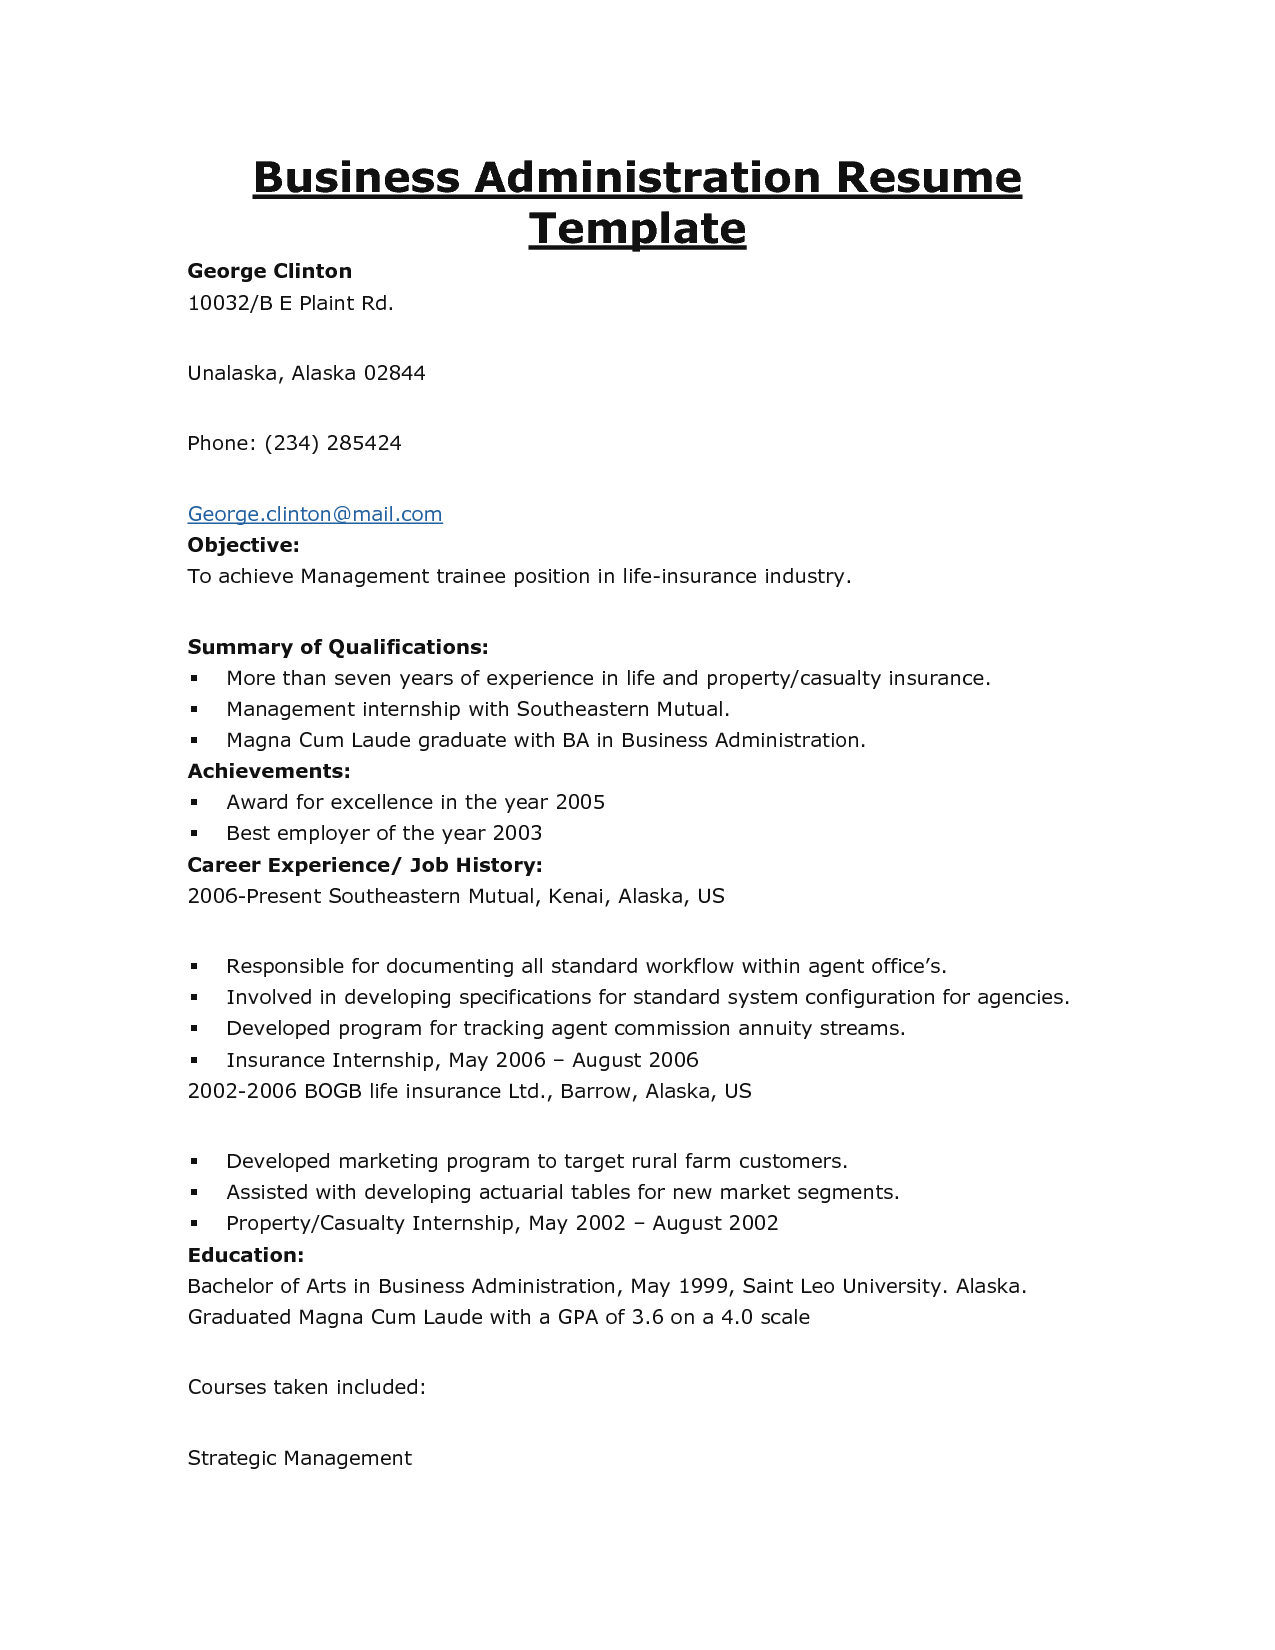 Business Management Resume Samples Fascinating Resume Examples Business Management #business #examples #management .